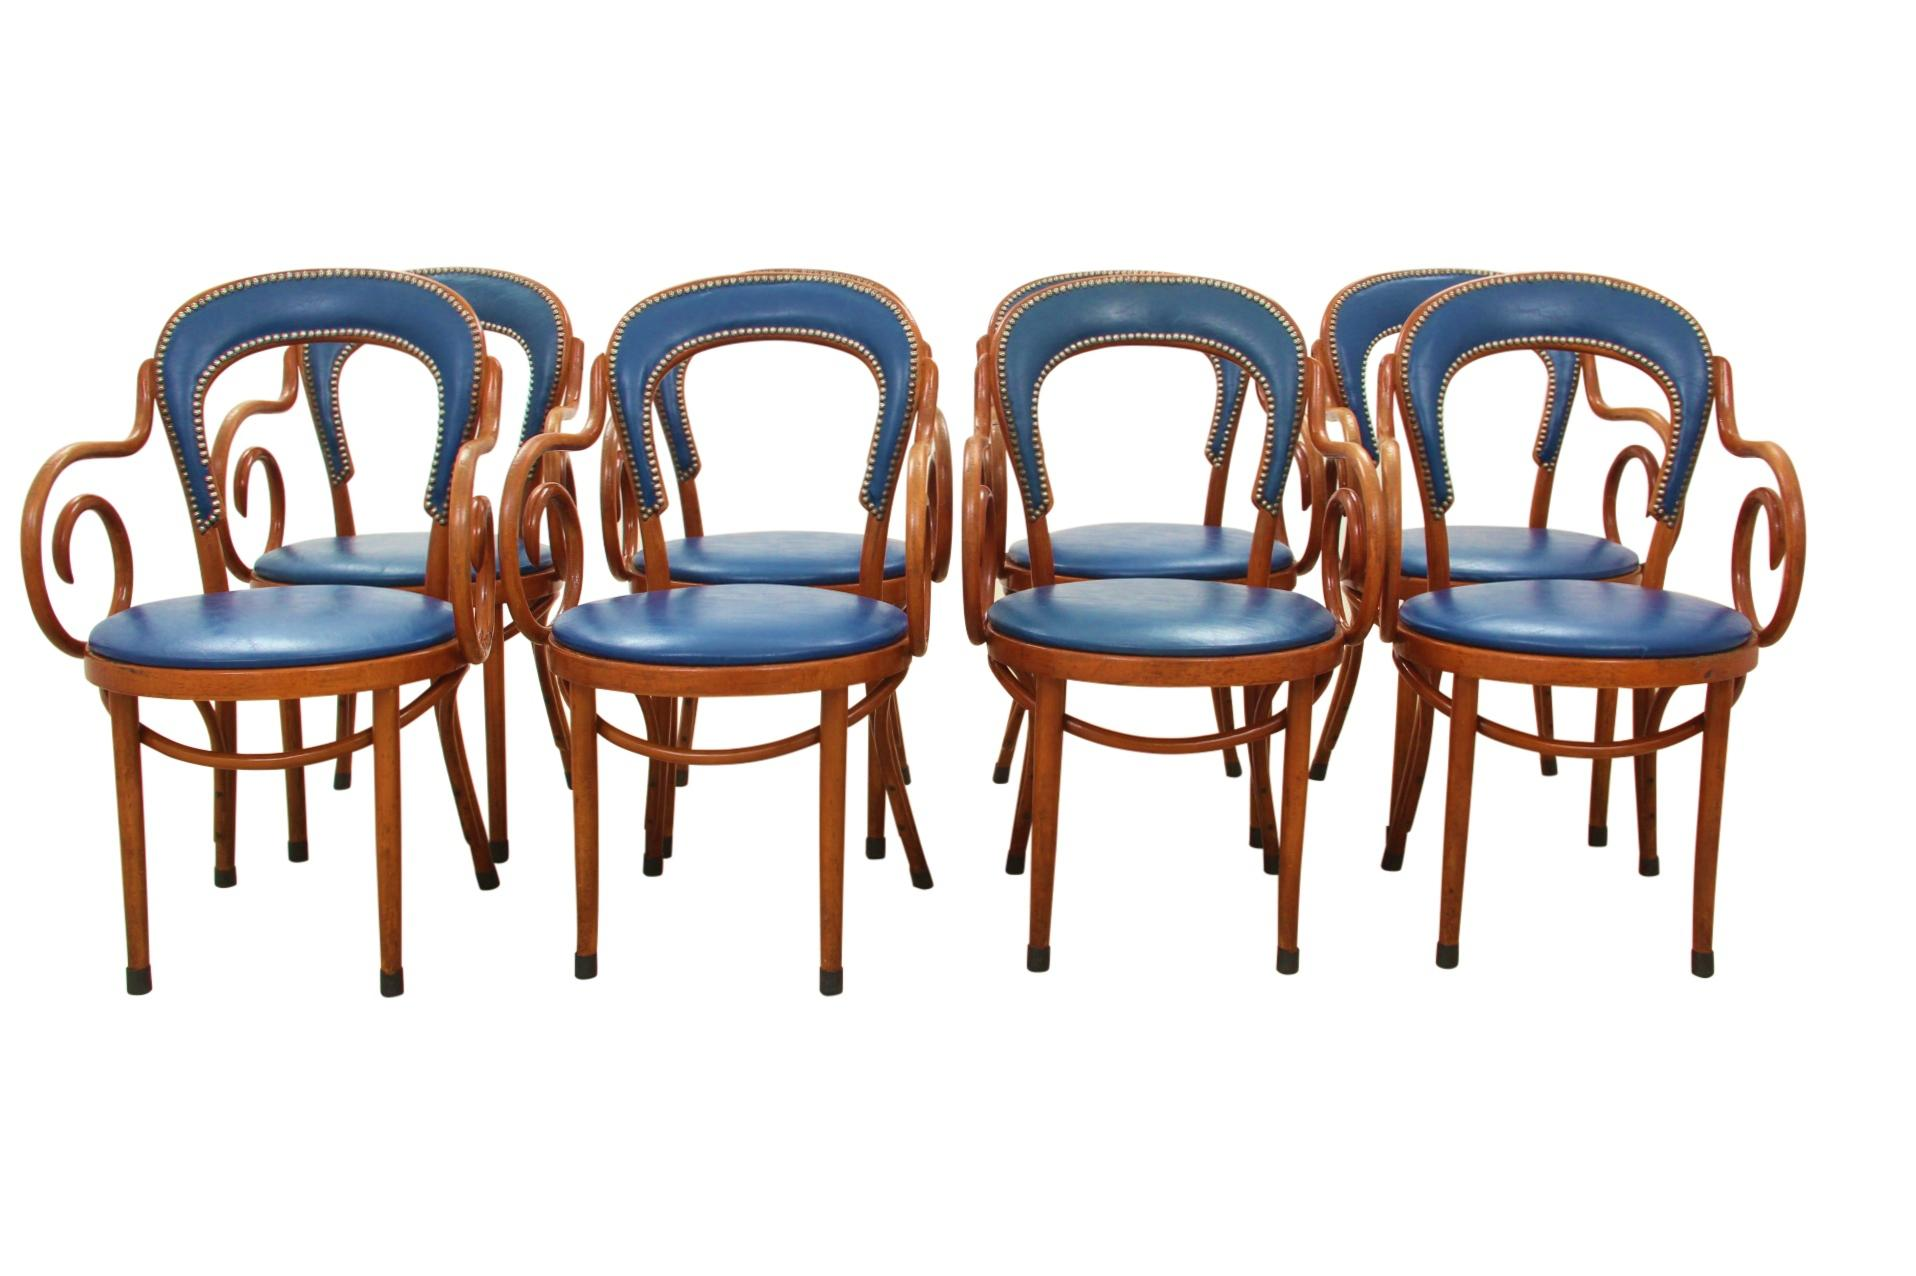 Shelby Williams Bistro Chairs In Navy   Set Of 8   Image 7 Of 7